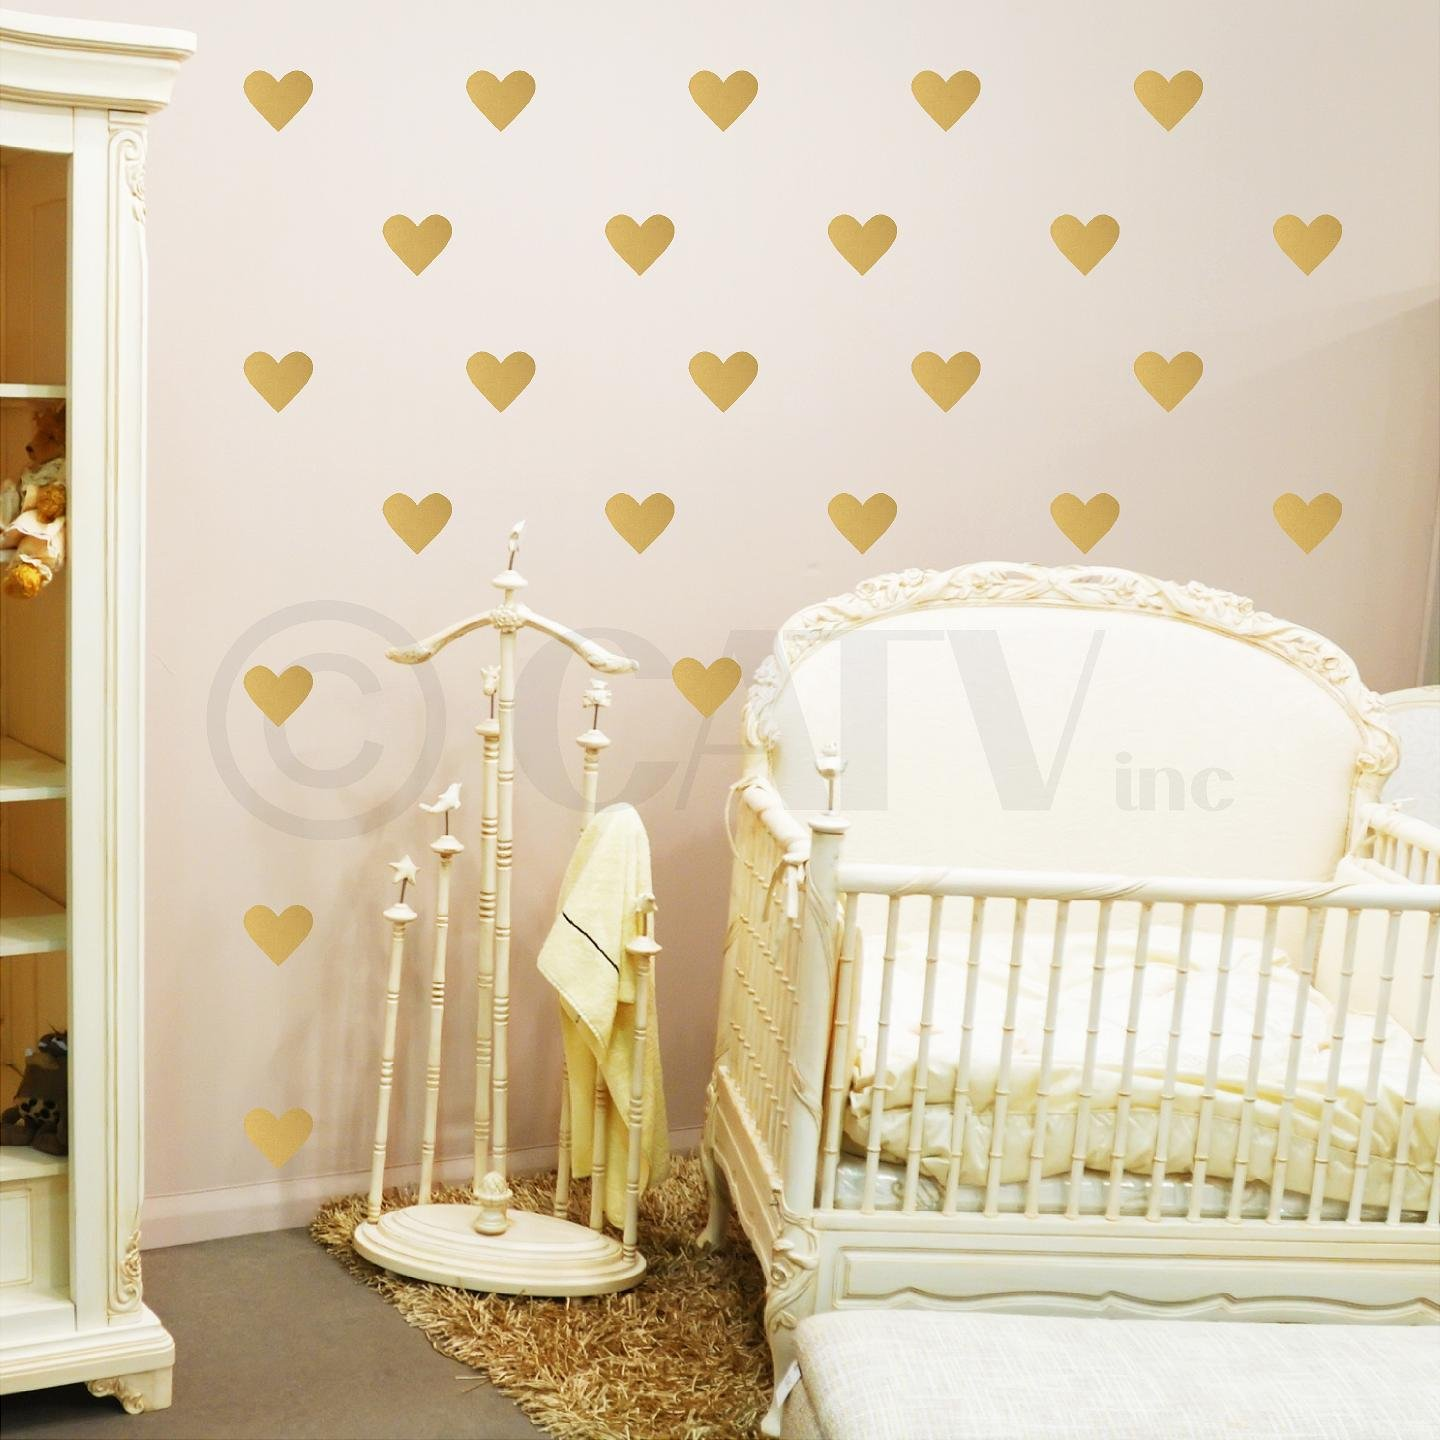 2 set of 120, White Hearts Vinyl Lettering Wall Pattern Decal Stickers